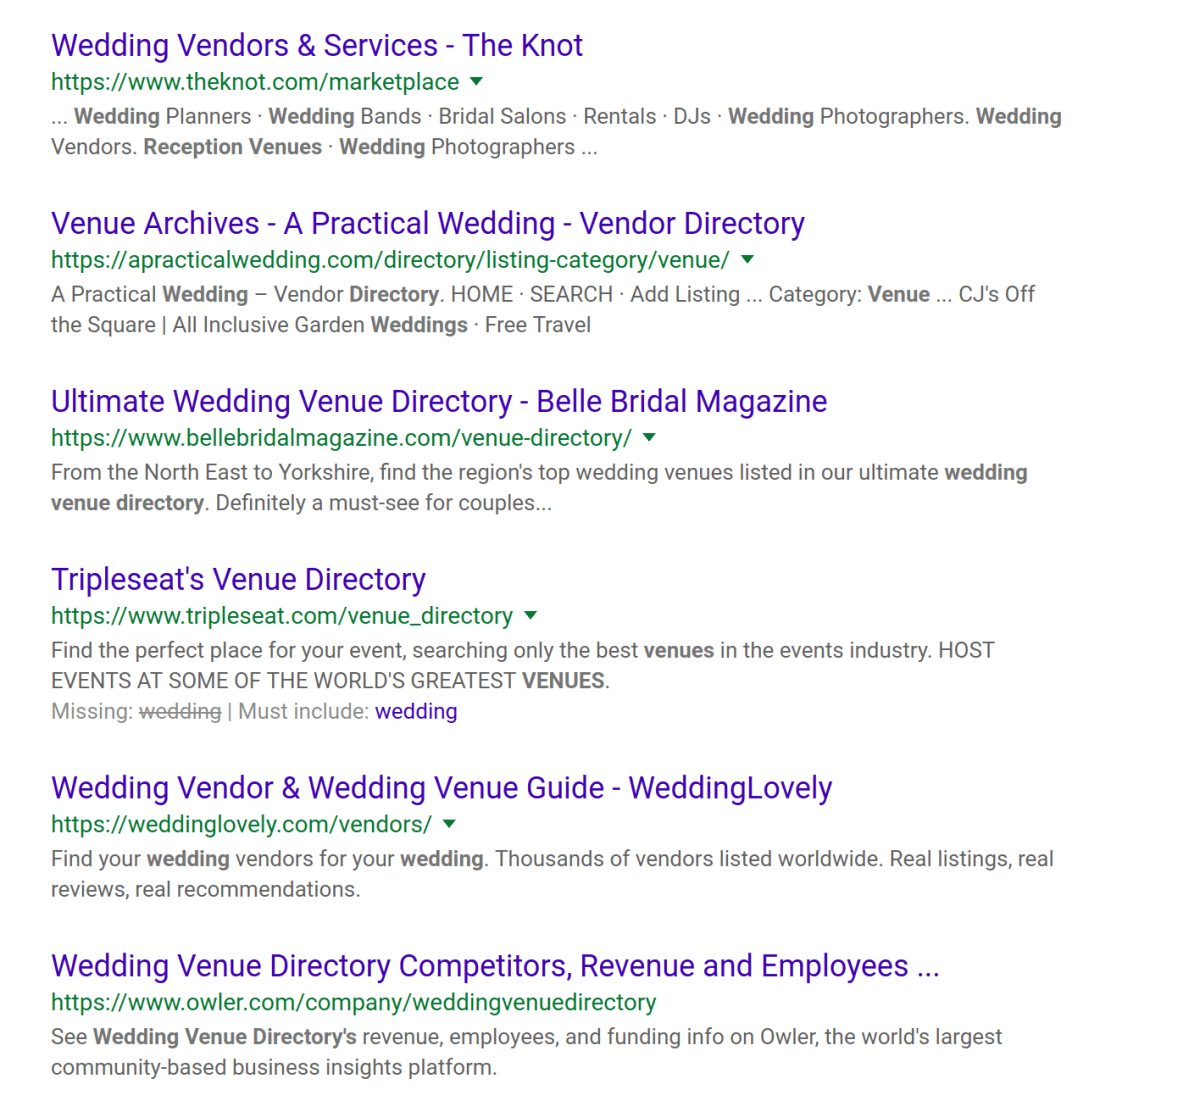 Google Search Results of Wedding Venue Directories